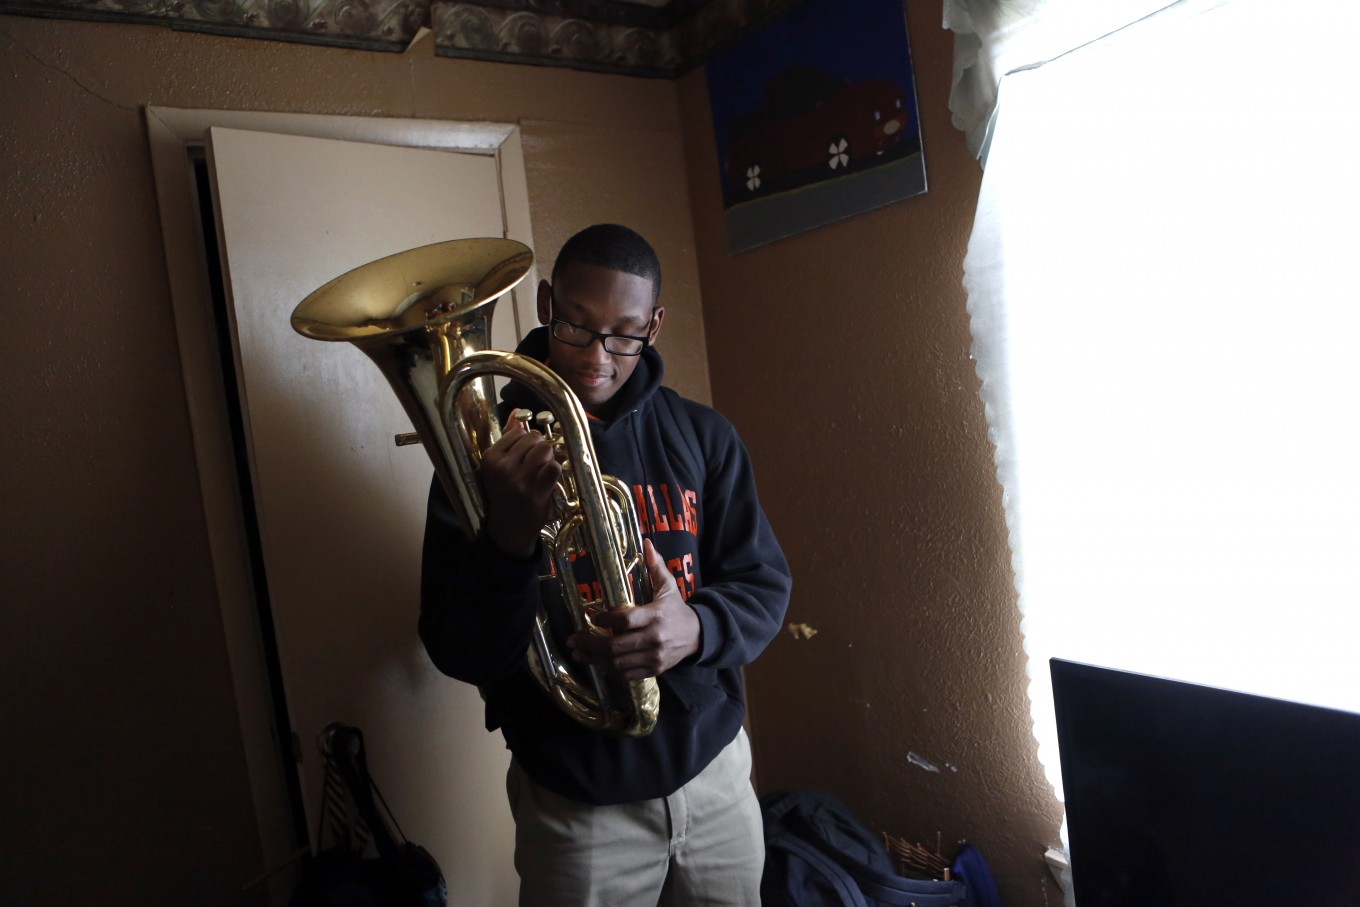 Desmond Davis, 18, admires his baritone, the instrument he plays in North Dallas High School's band. Photo/Lara Solt